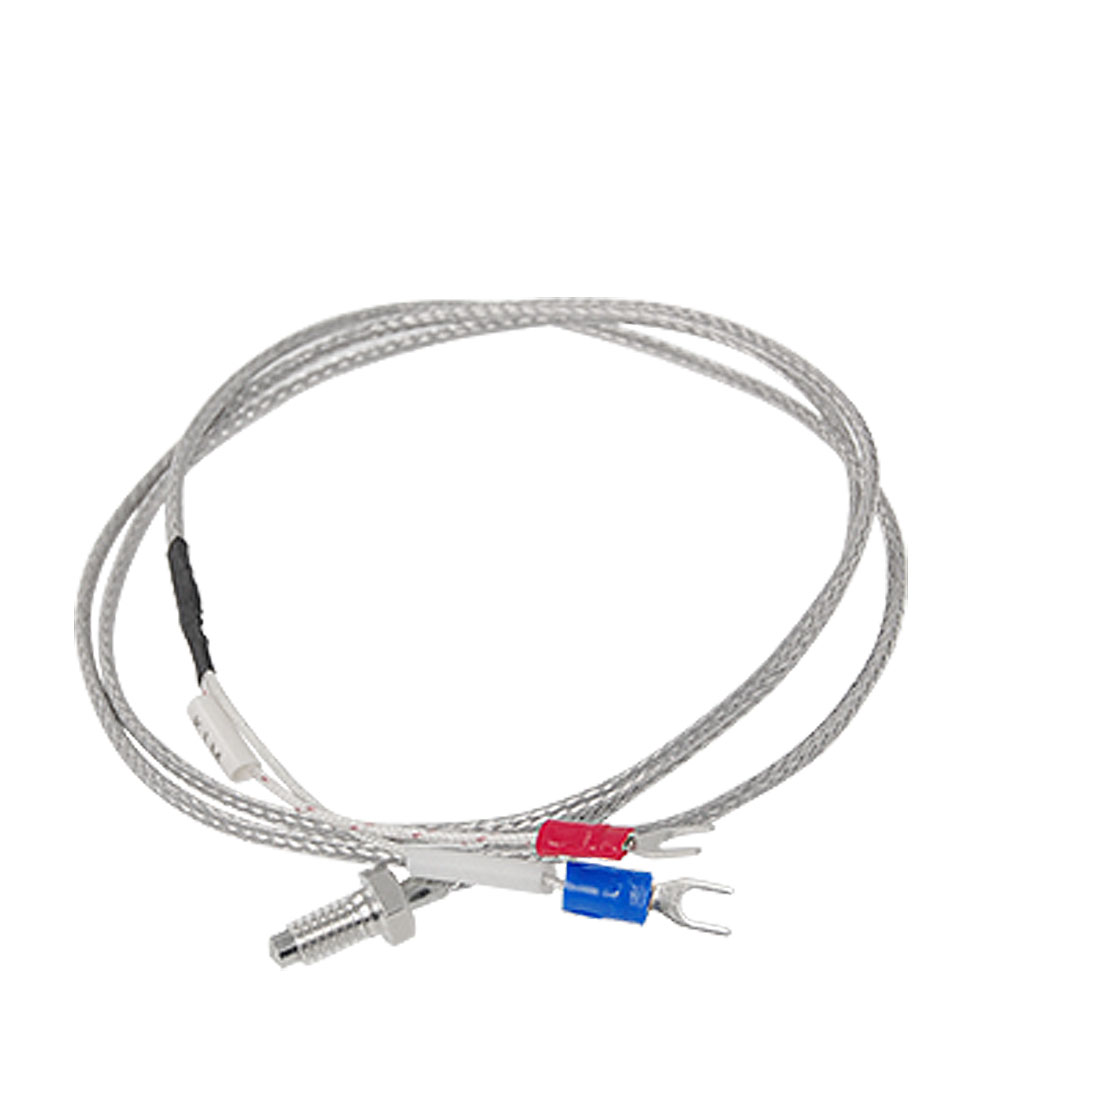 1M Wire Measuring Range 0-400 Deg C Thermocouple Temperature Sensor